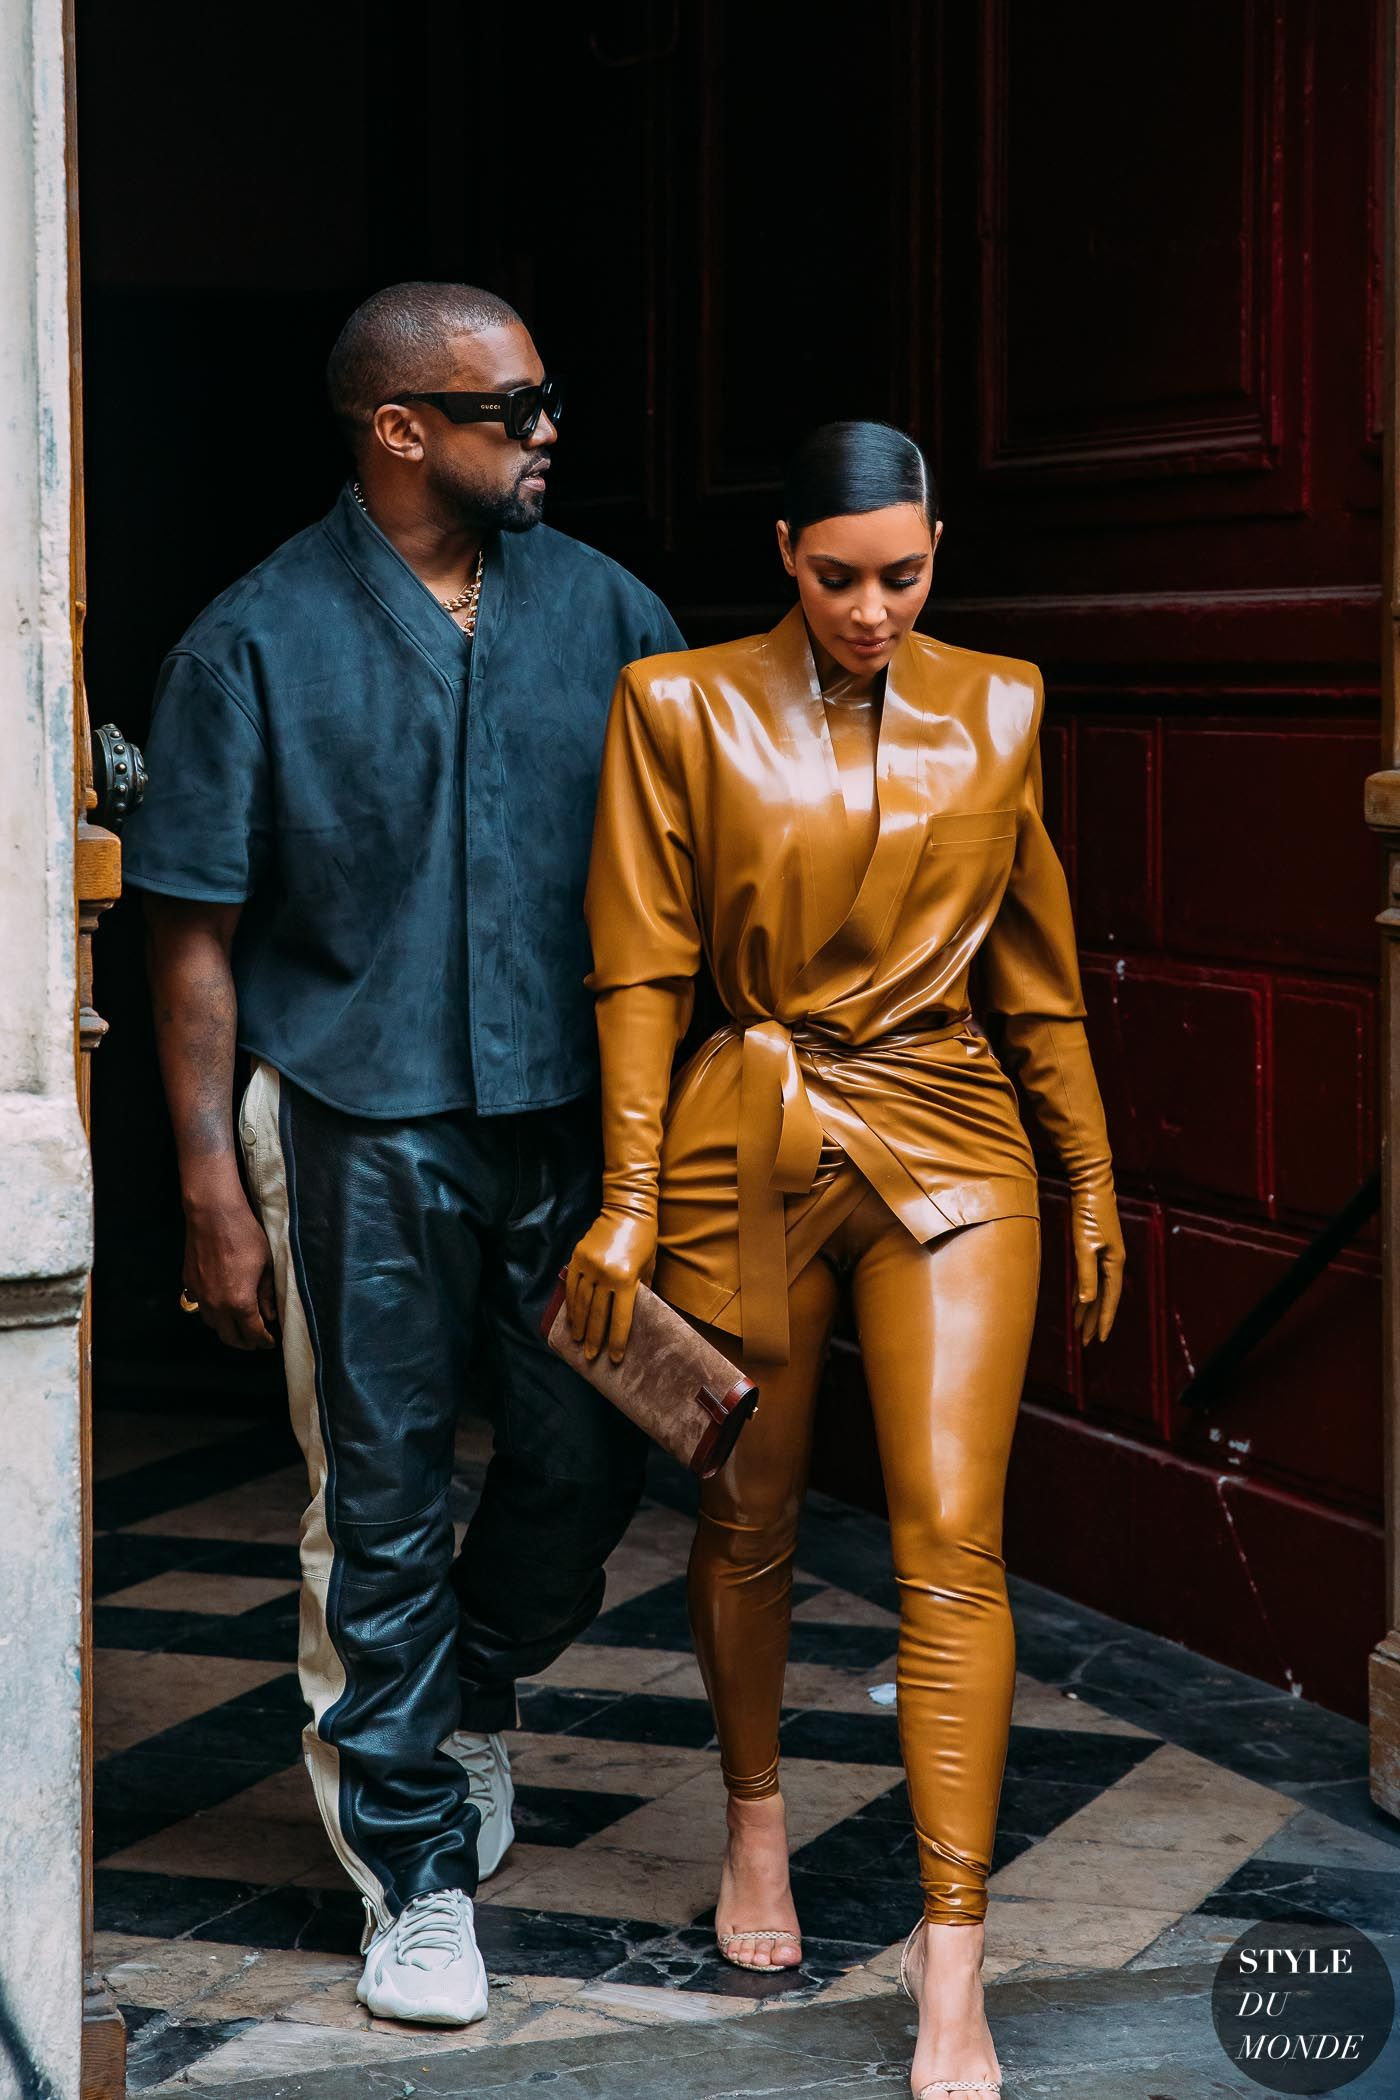 Paris Fw 2020 Street Style Kanye West And Kim Kardashian Style Du Monde Street Style Street Fashion In 2020 Street Fashion Photos Street Style Kanye West And Kim